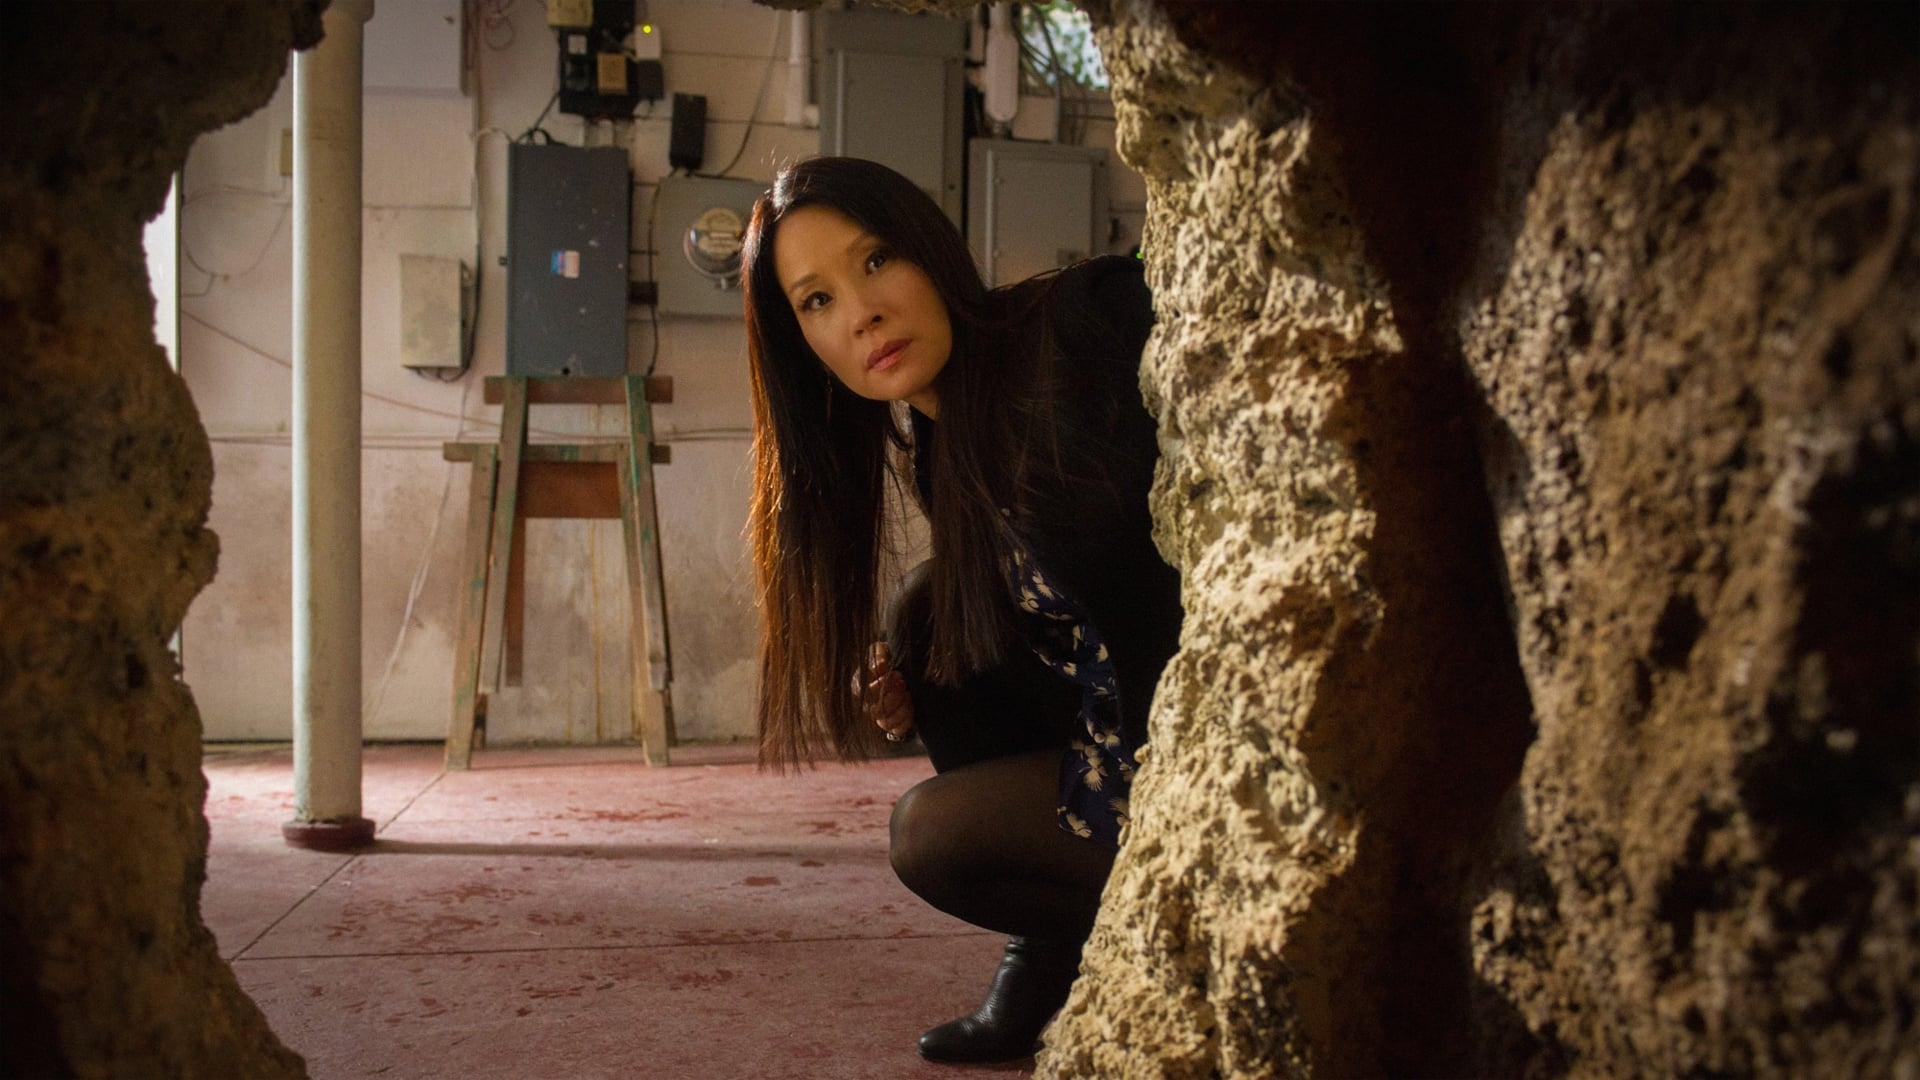 Elementary - Season 3 Episode 20 : A Stitch in Time